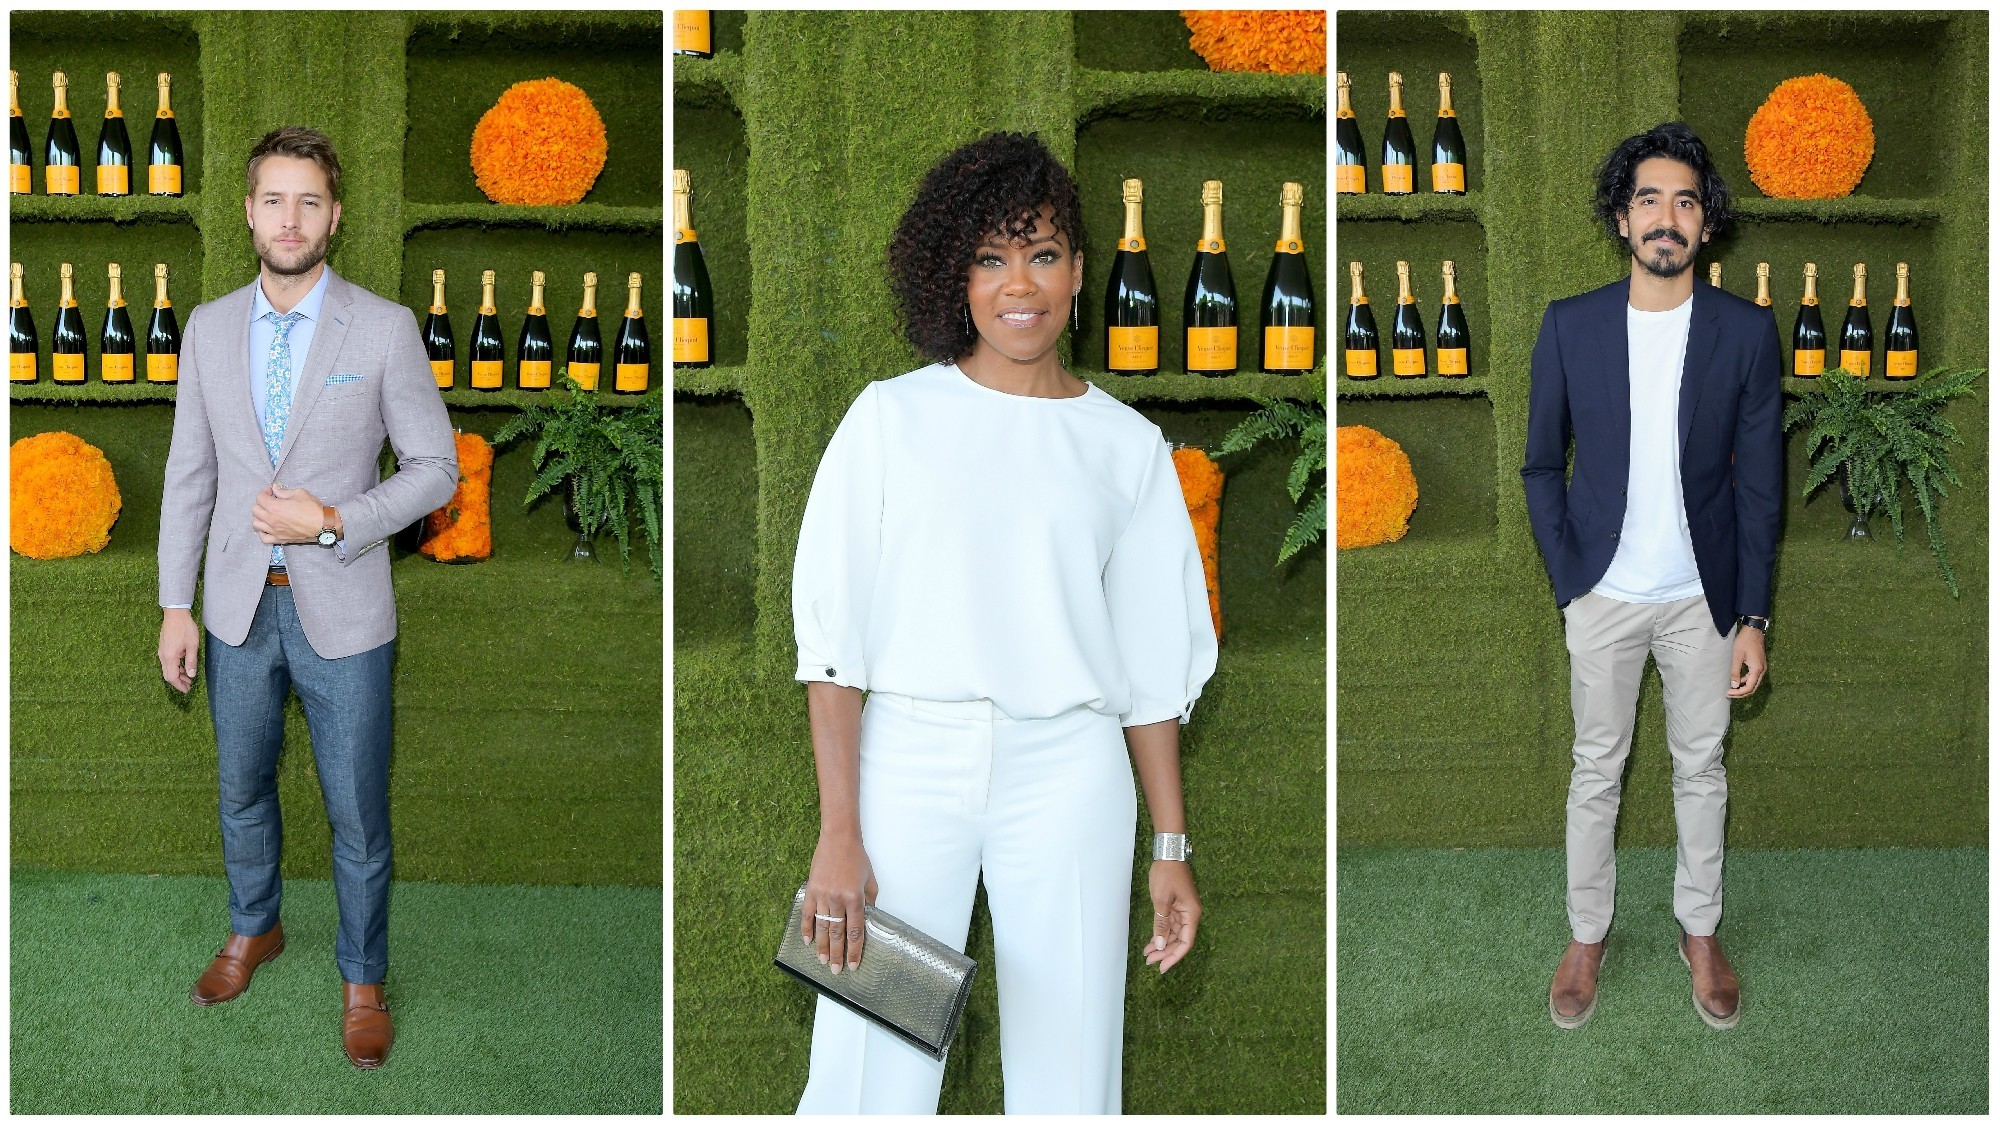 Justin Hartley, from left, Regina King and Dev Patel attend the annual polo match.